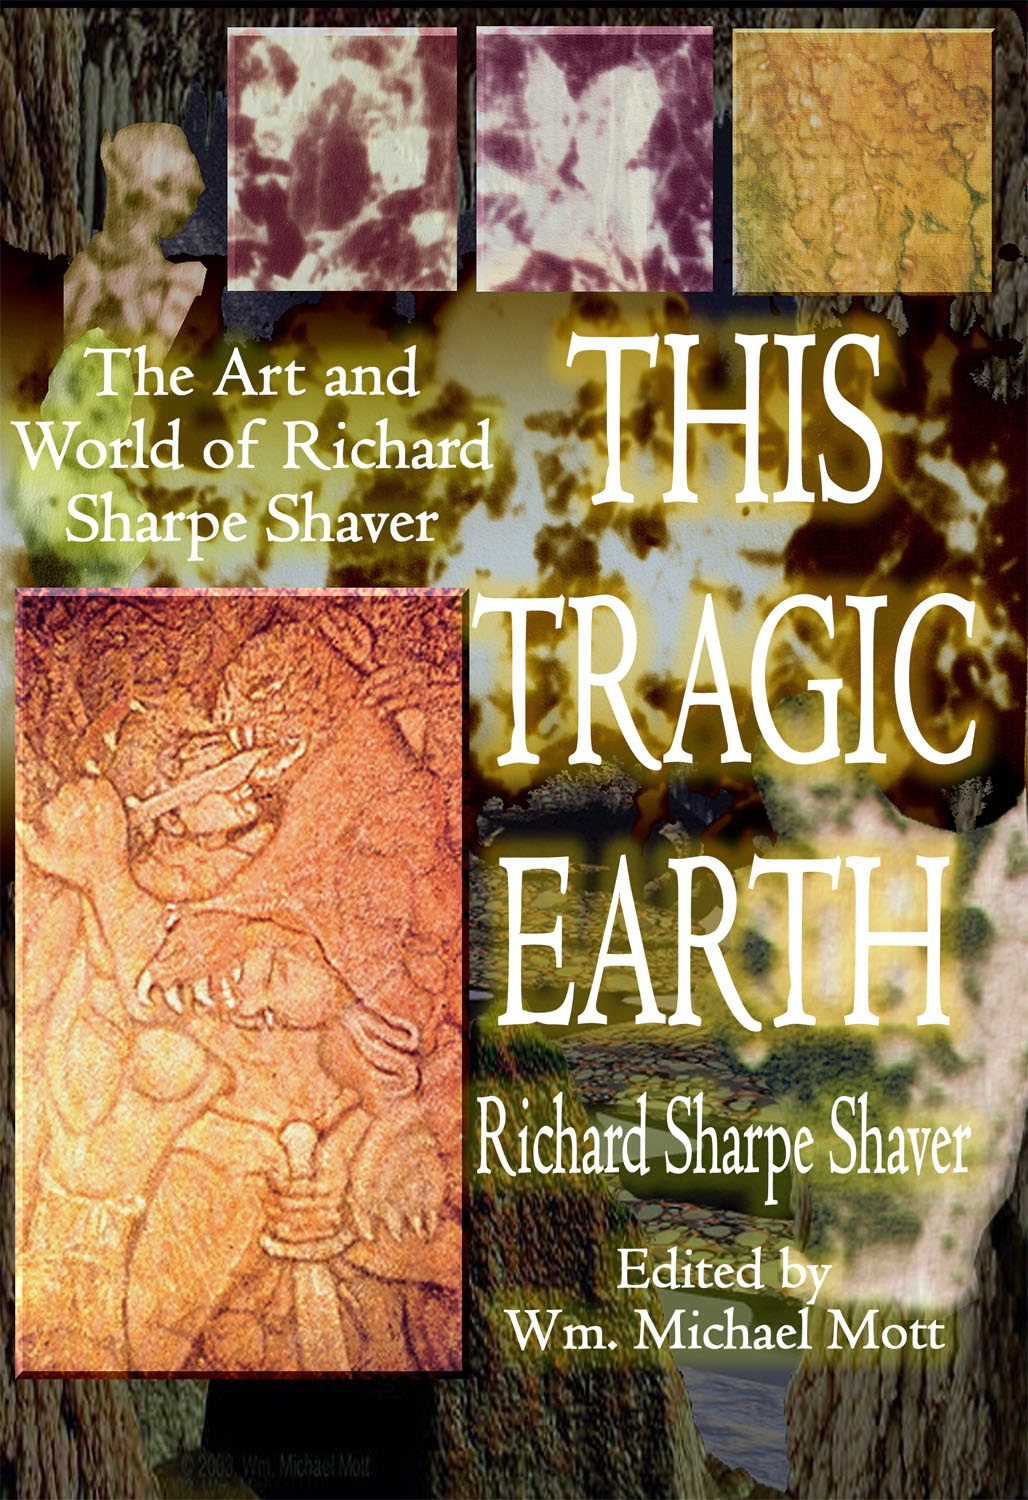 This Tragic Earth Art and World of Richard Sharpe Shaver Book Cover